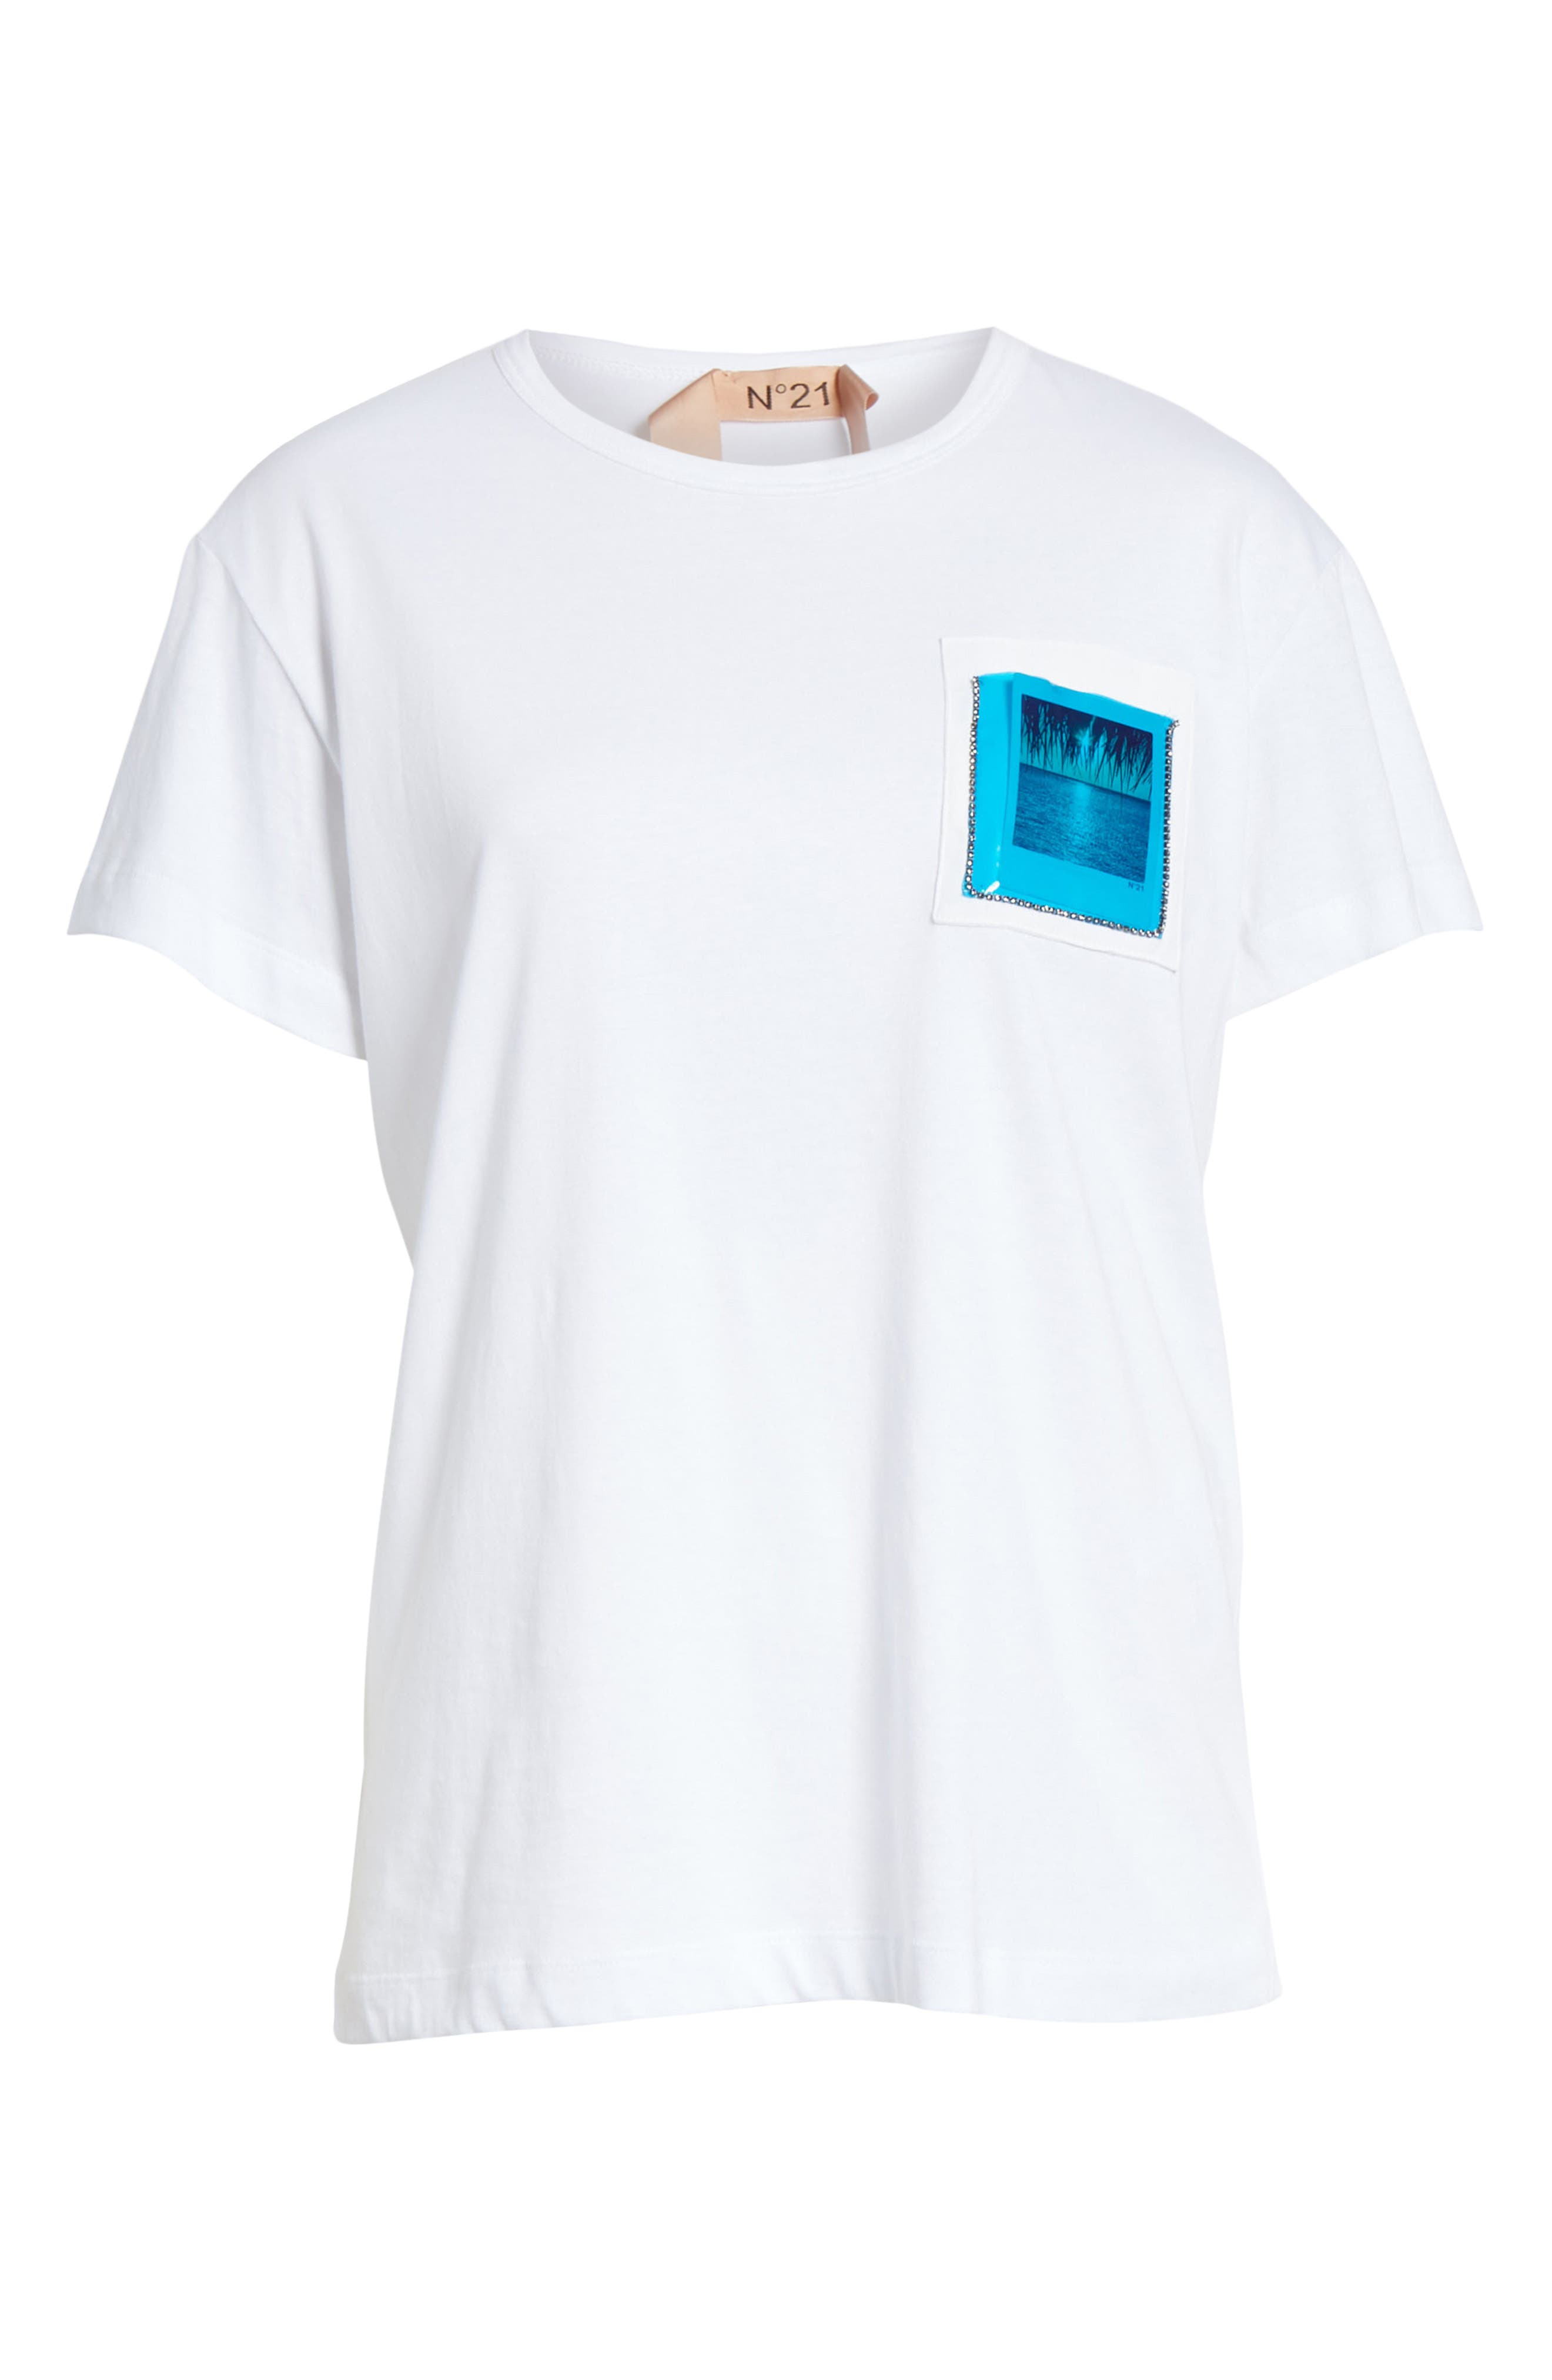 Nº21 Photograph Pocket Tee,                             Alternate thumbnail 6, color,                             WHITE